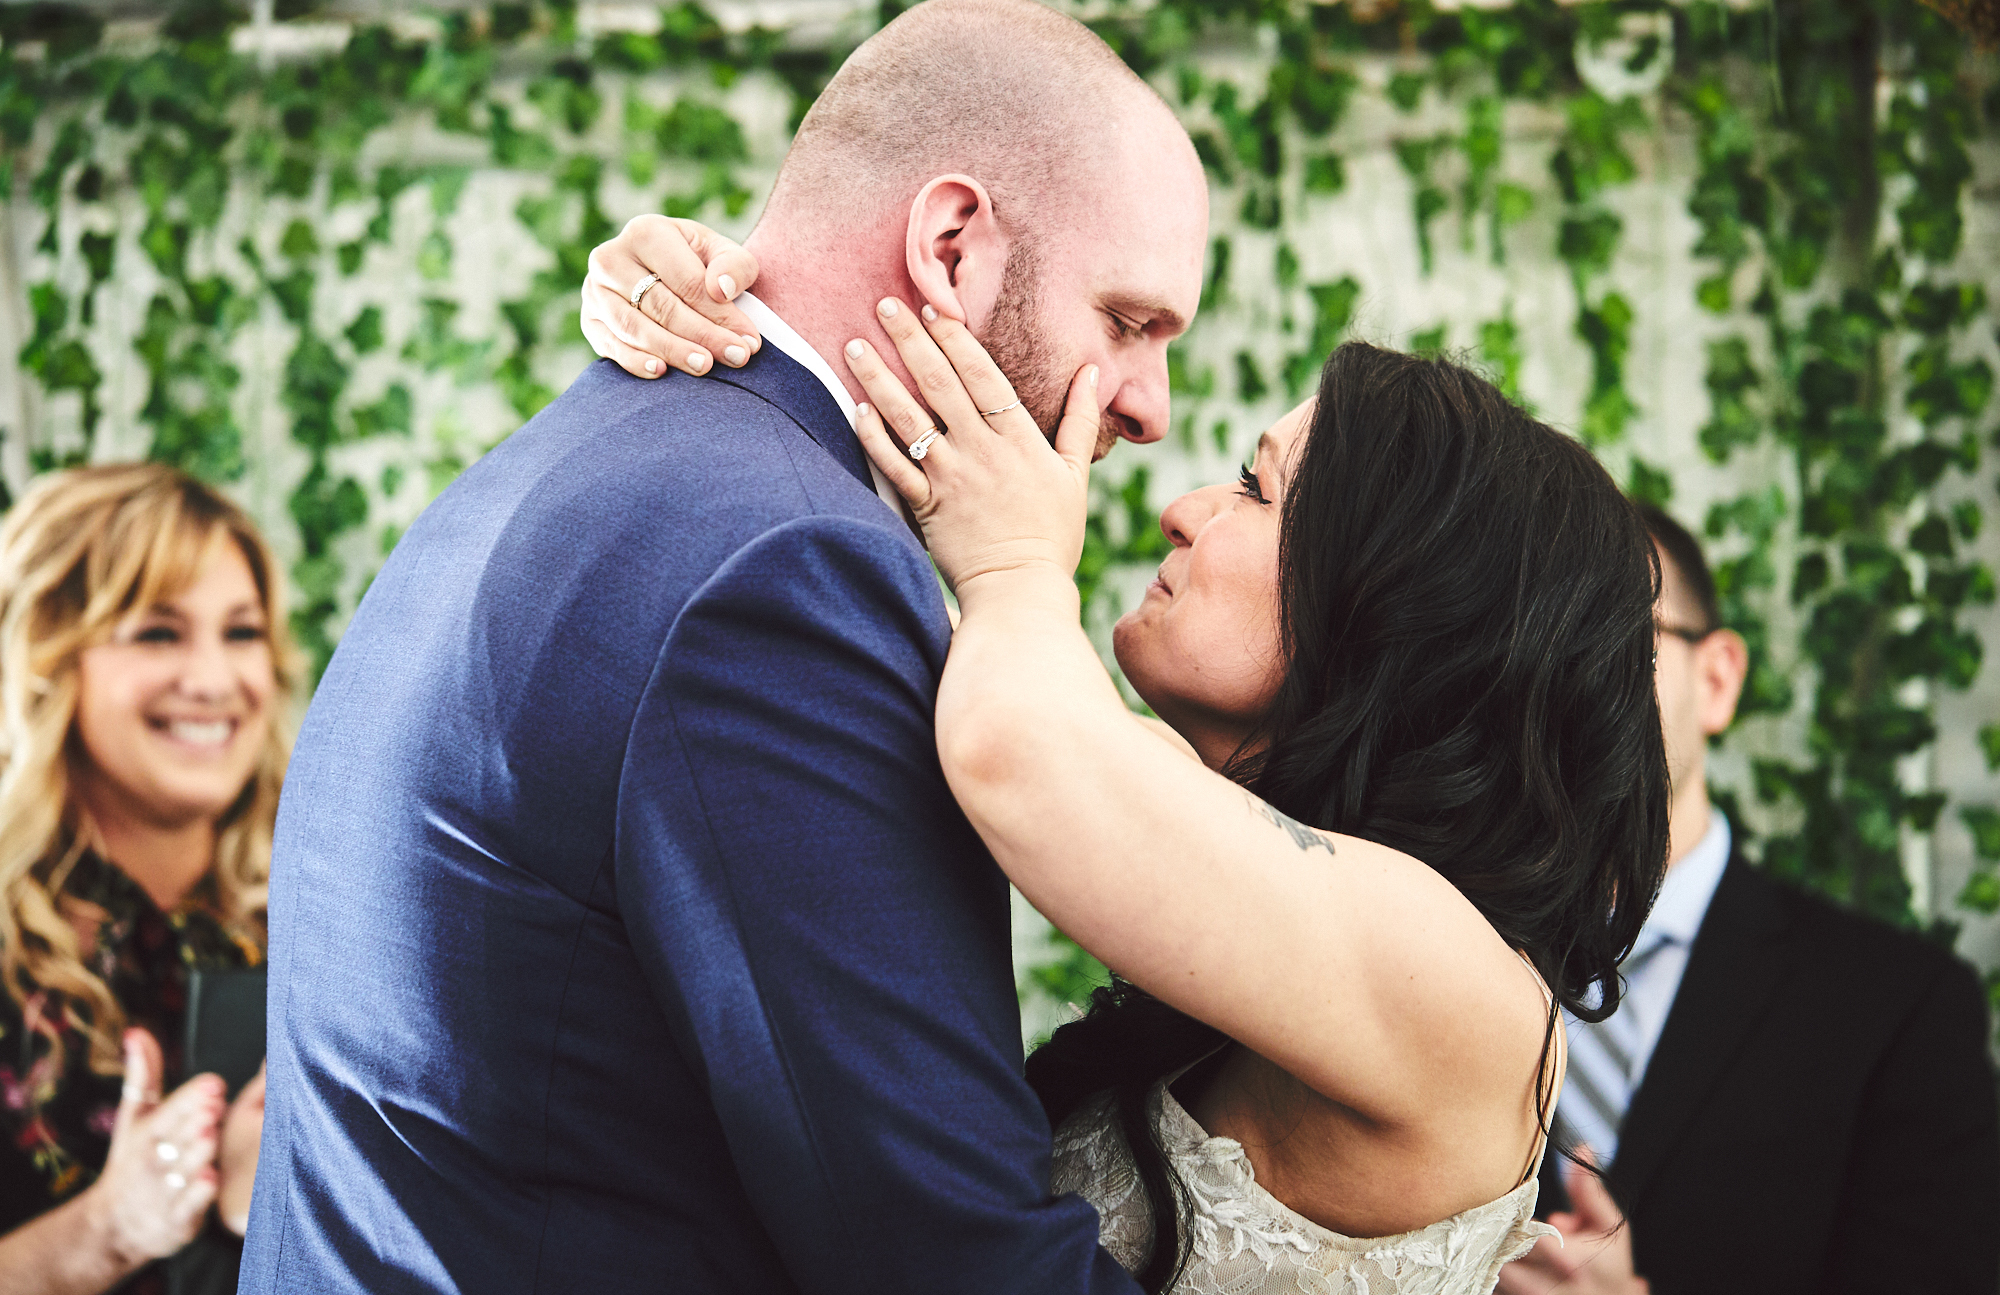 190518_SpringThreesBreweryWedding_By_BriJohnsonWeddings_0098.jpg